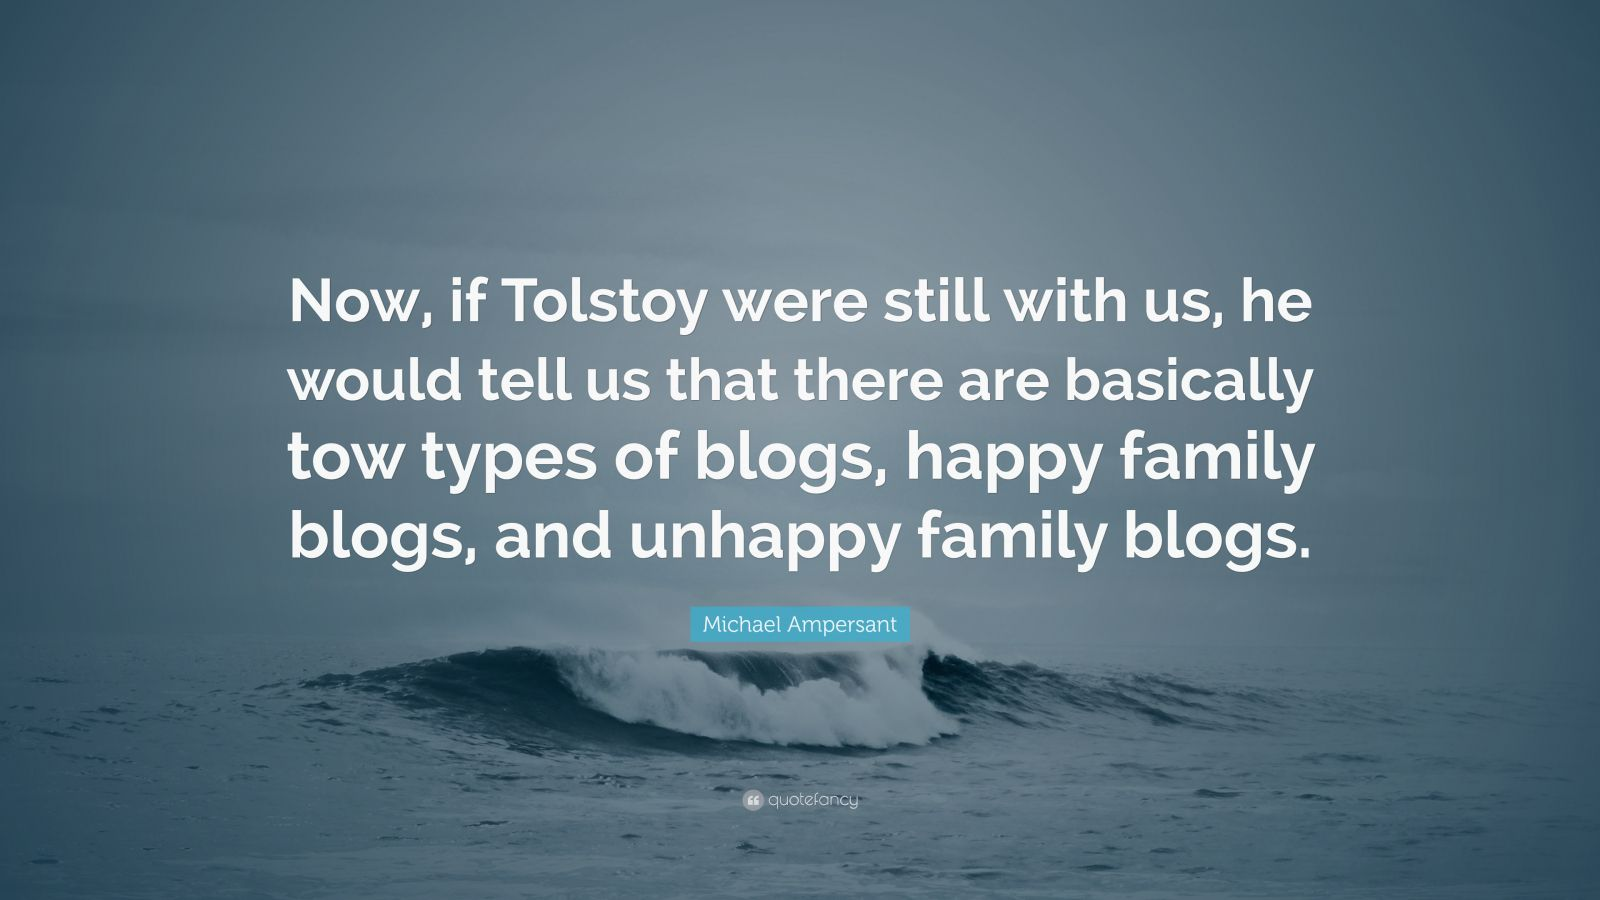 "Michael Ampersant Quote: ""Now, if Tolstoy were still with us, he would tell us that there are basically tow types of blogs, happy family blogs, and unhappy family blogs."""